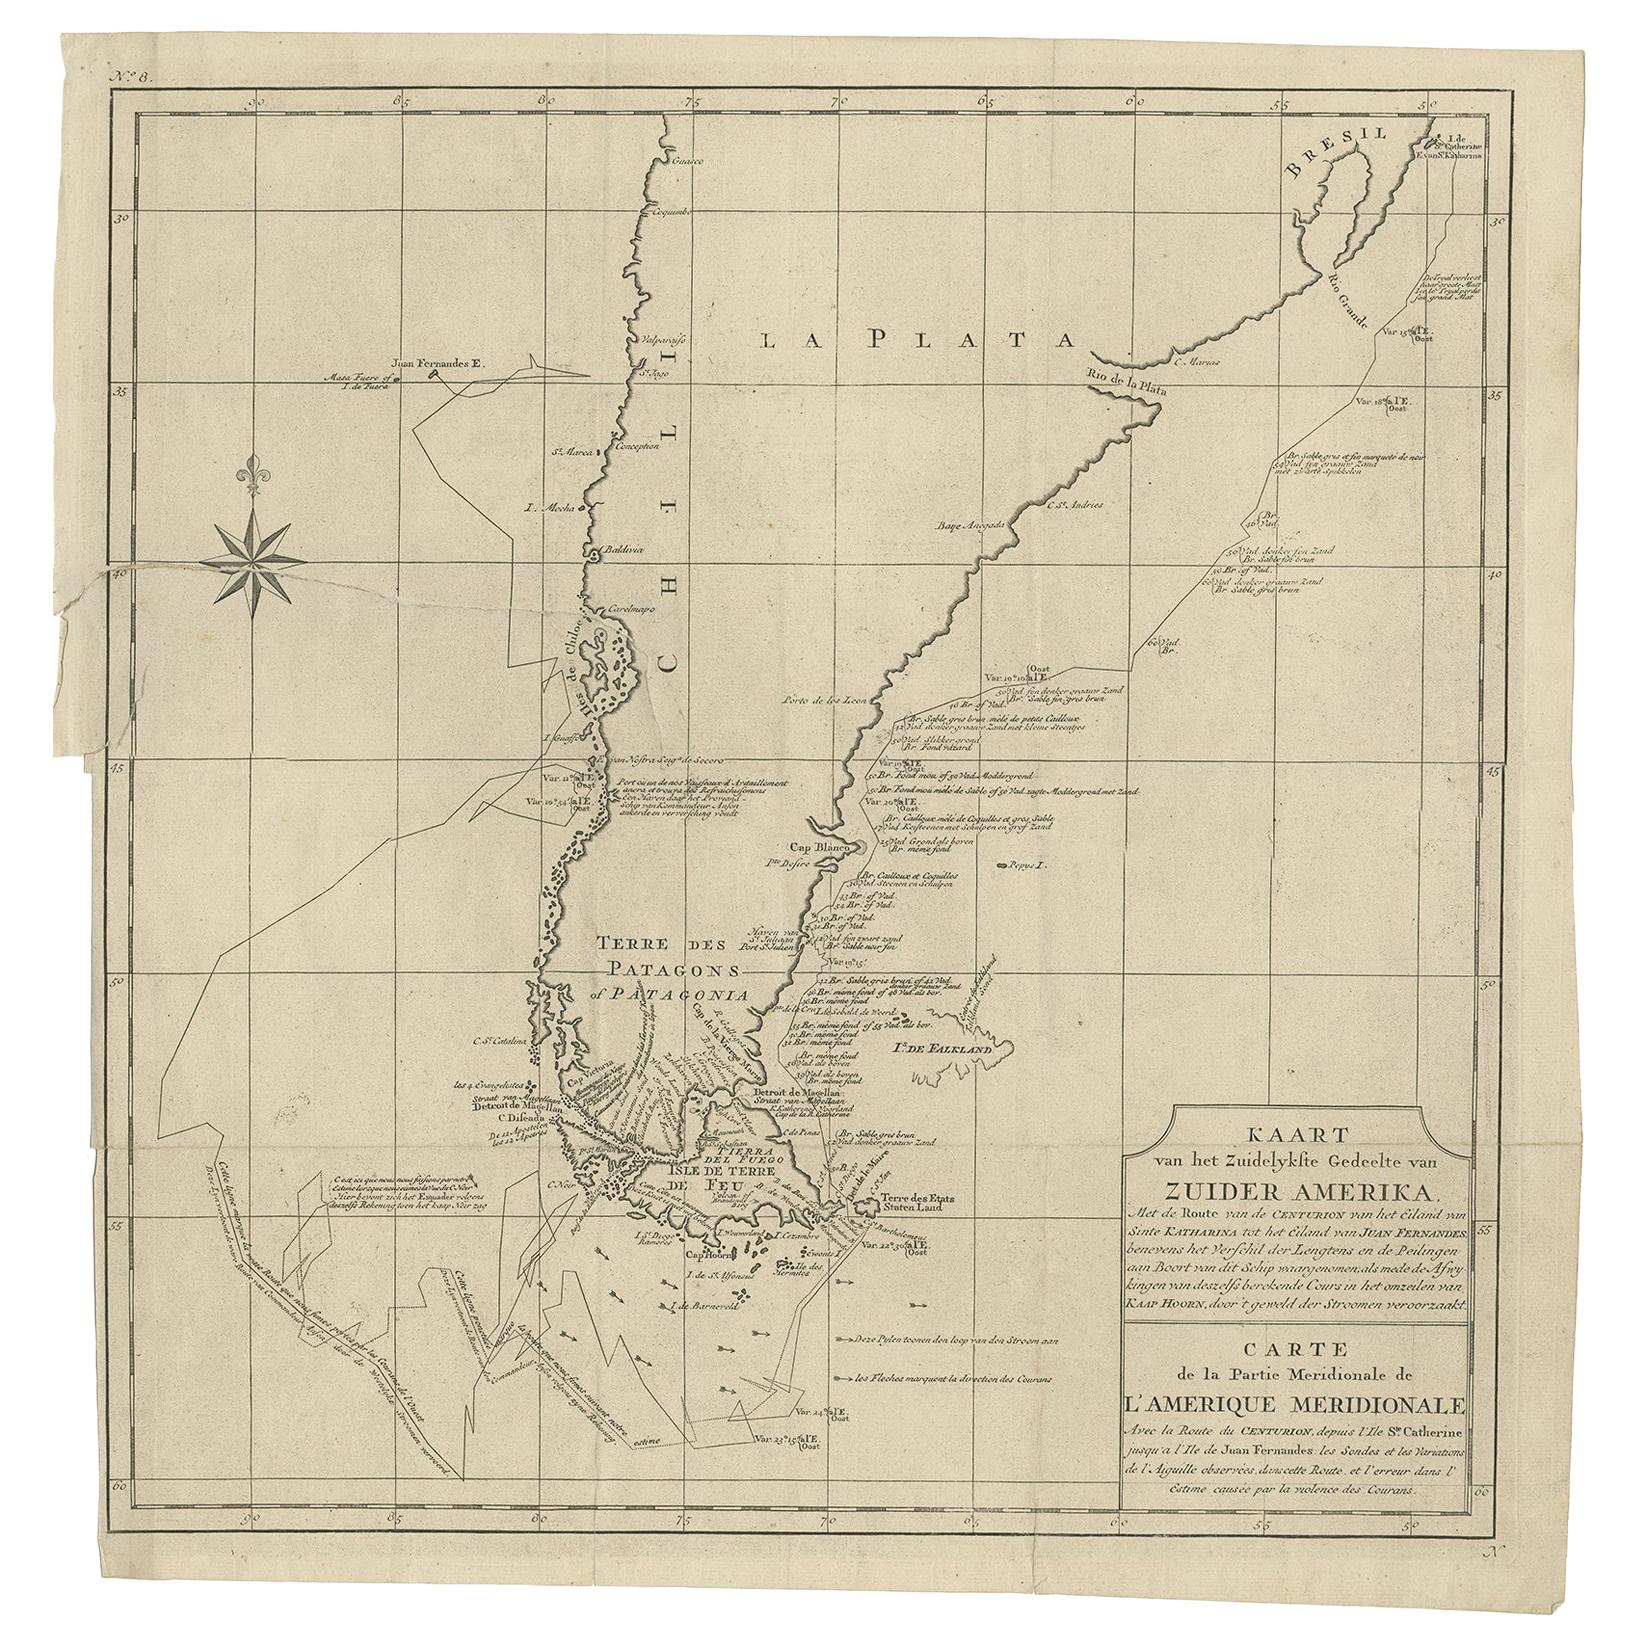 Antique Map of South America by G. Anson, 1749